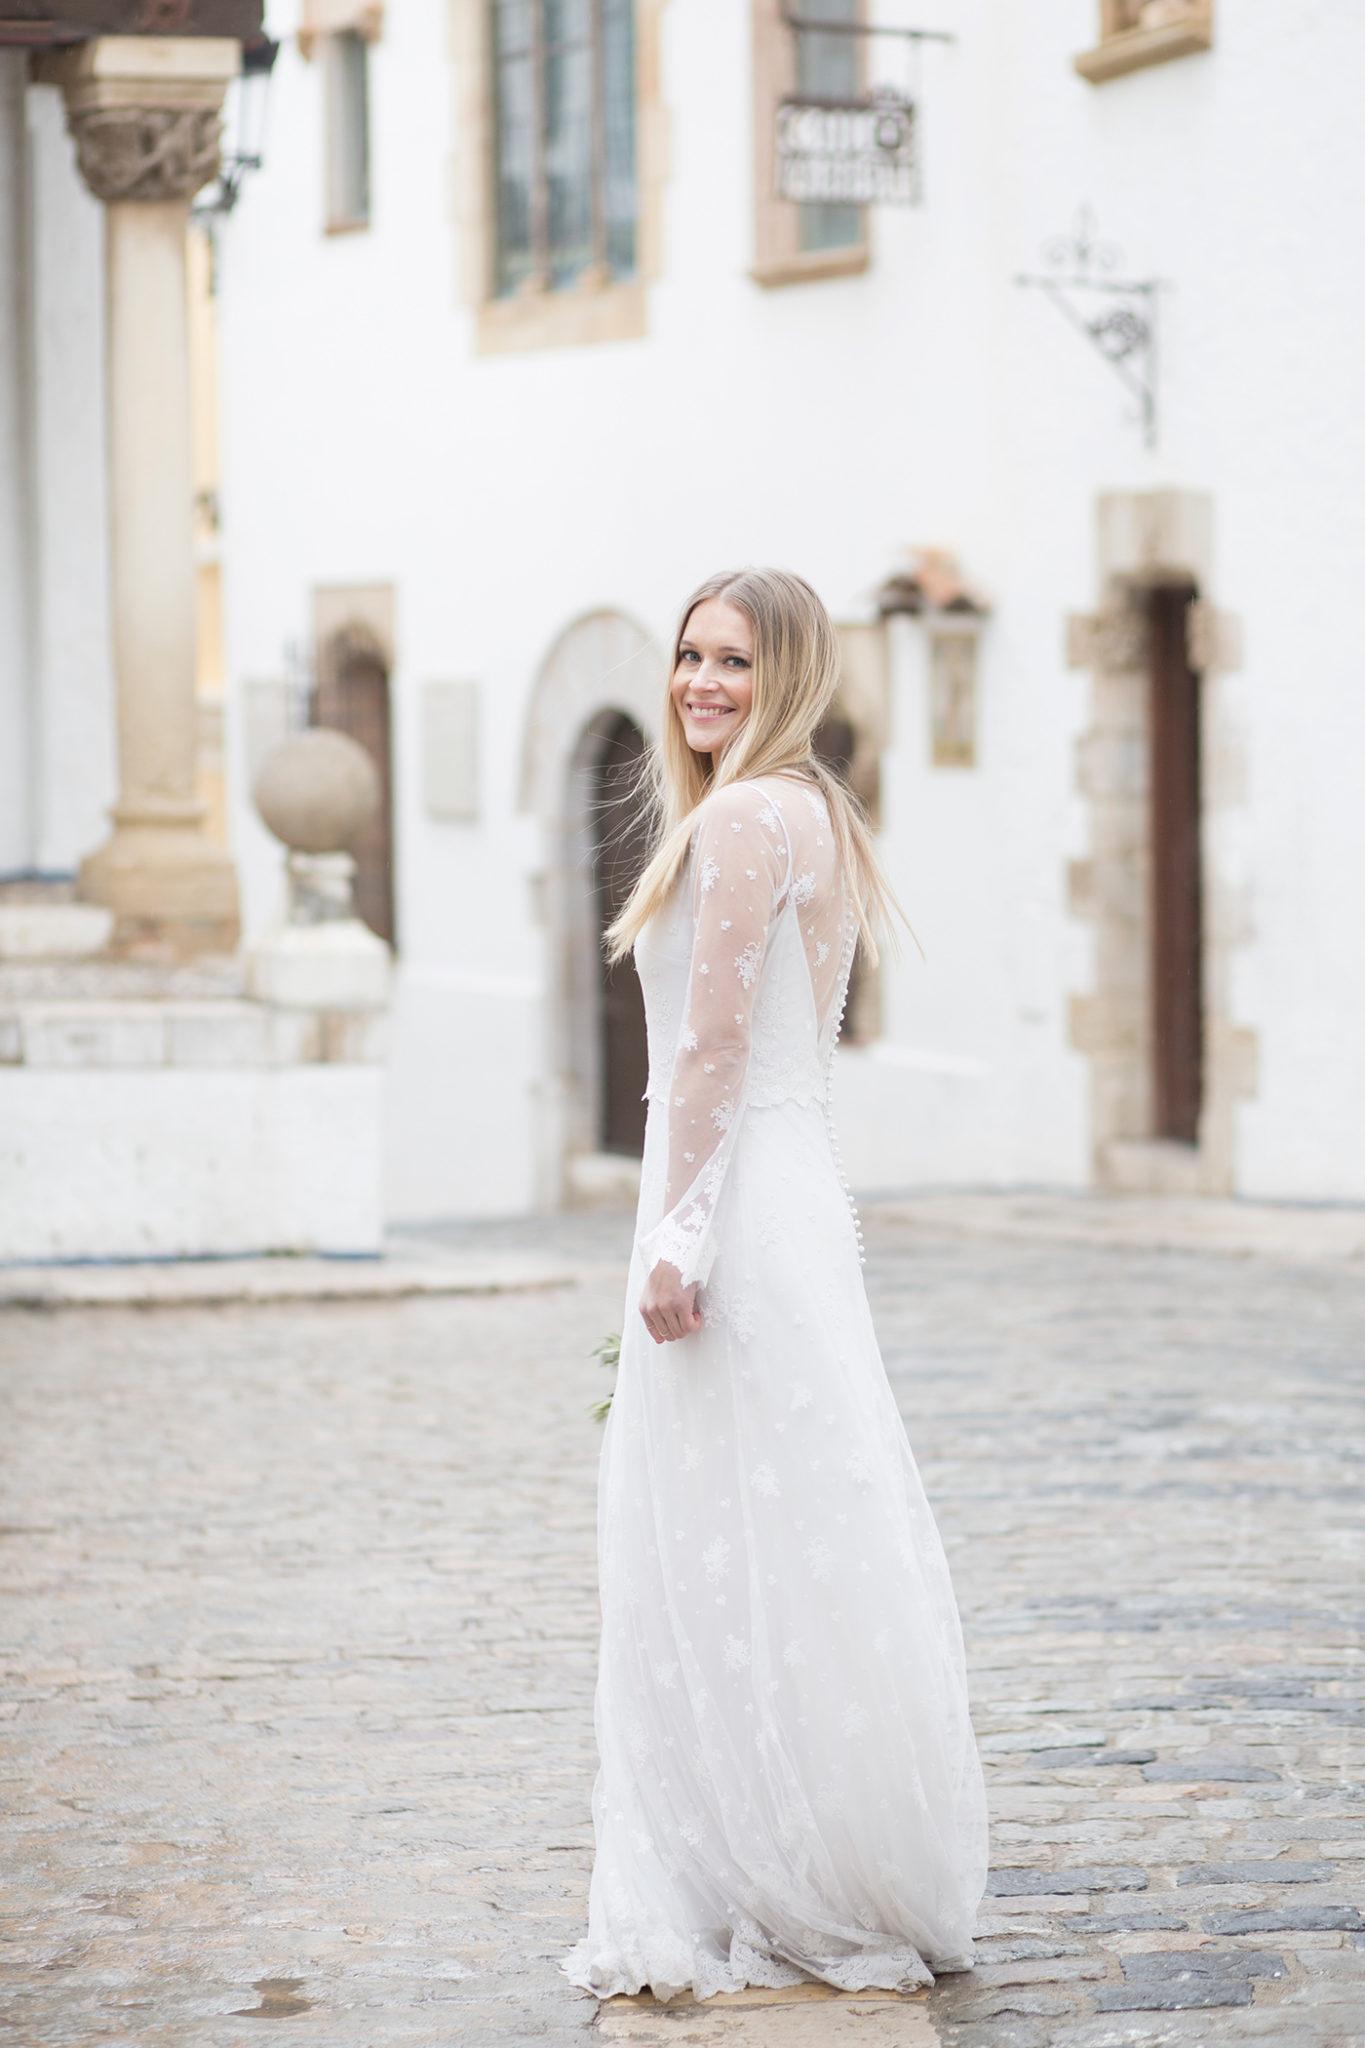 Wedding photographer Sitges and Barcelona